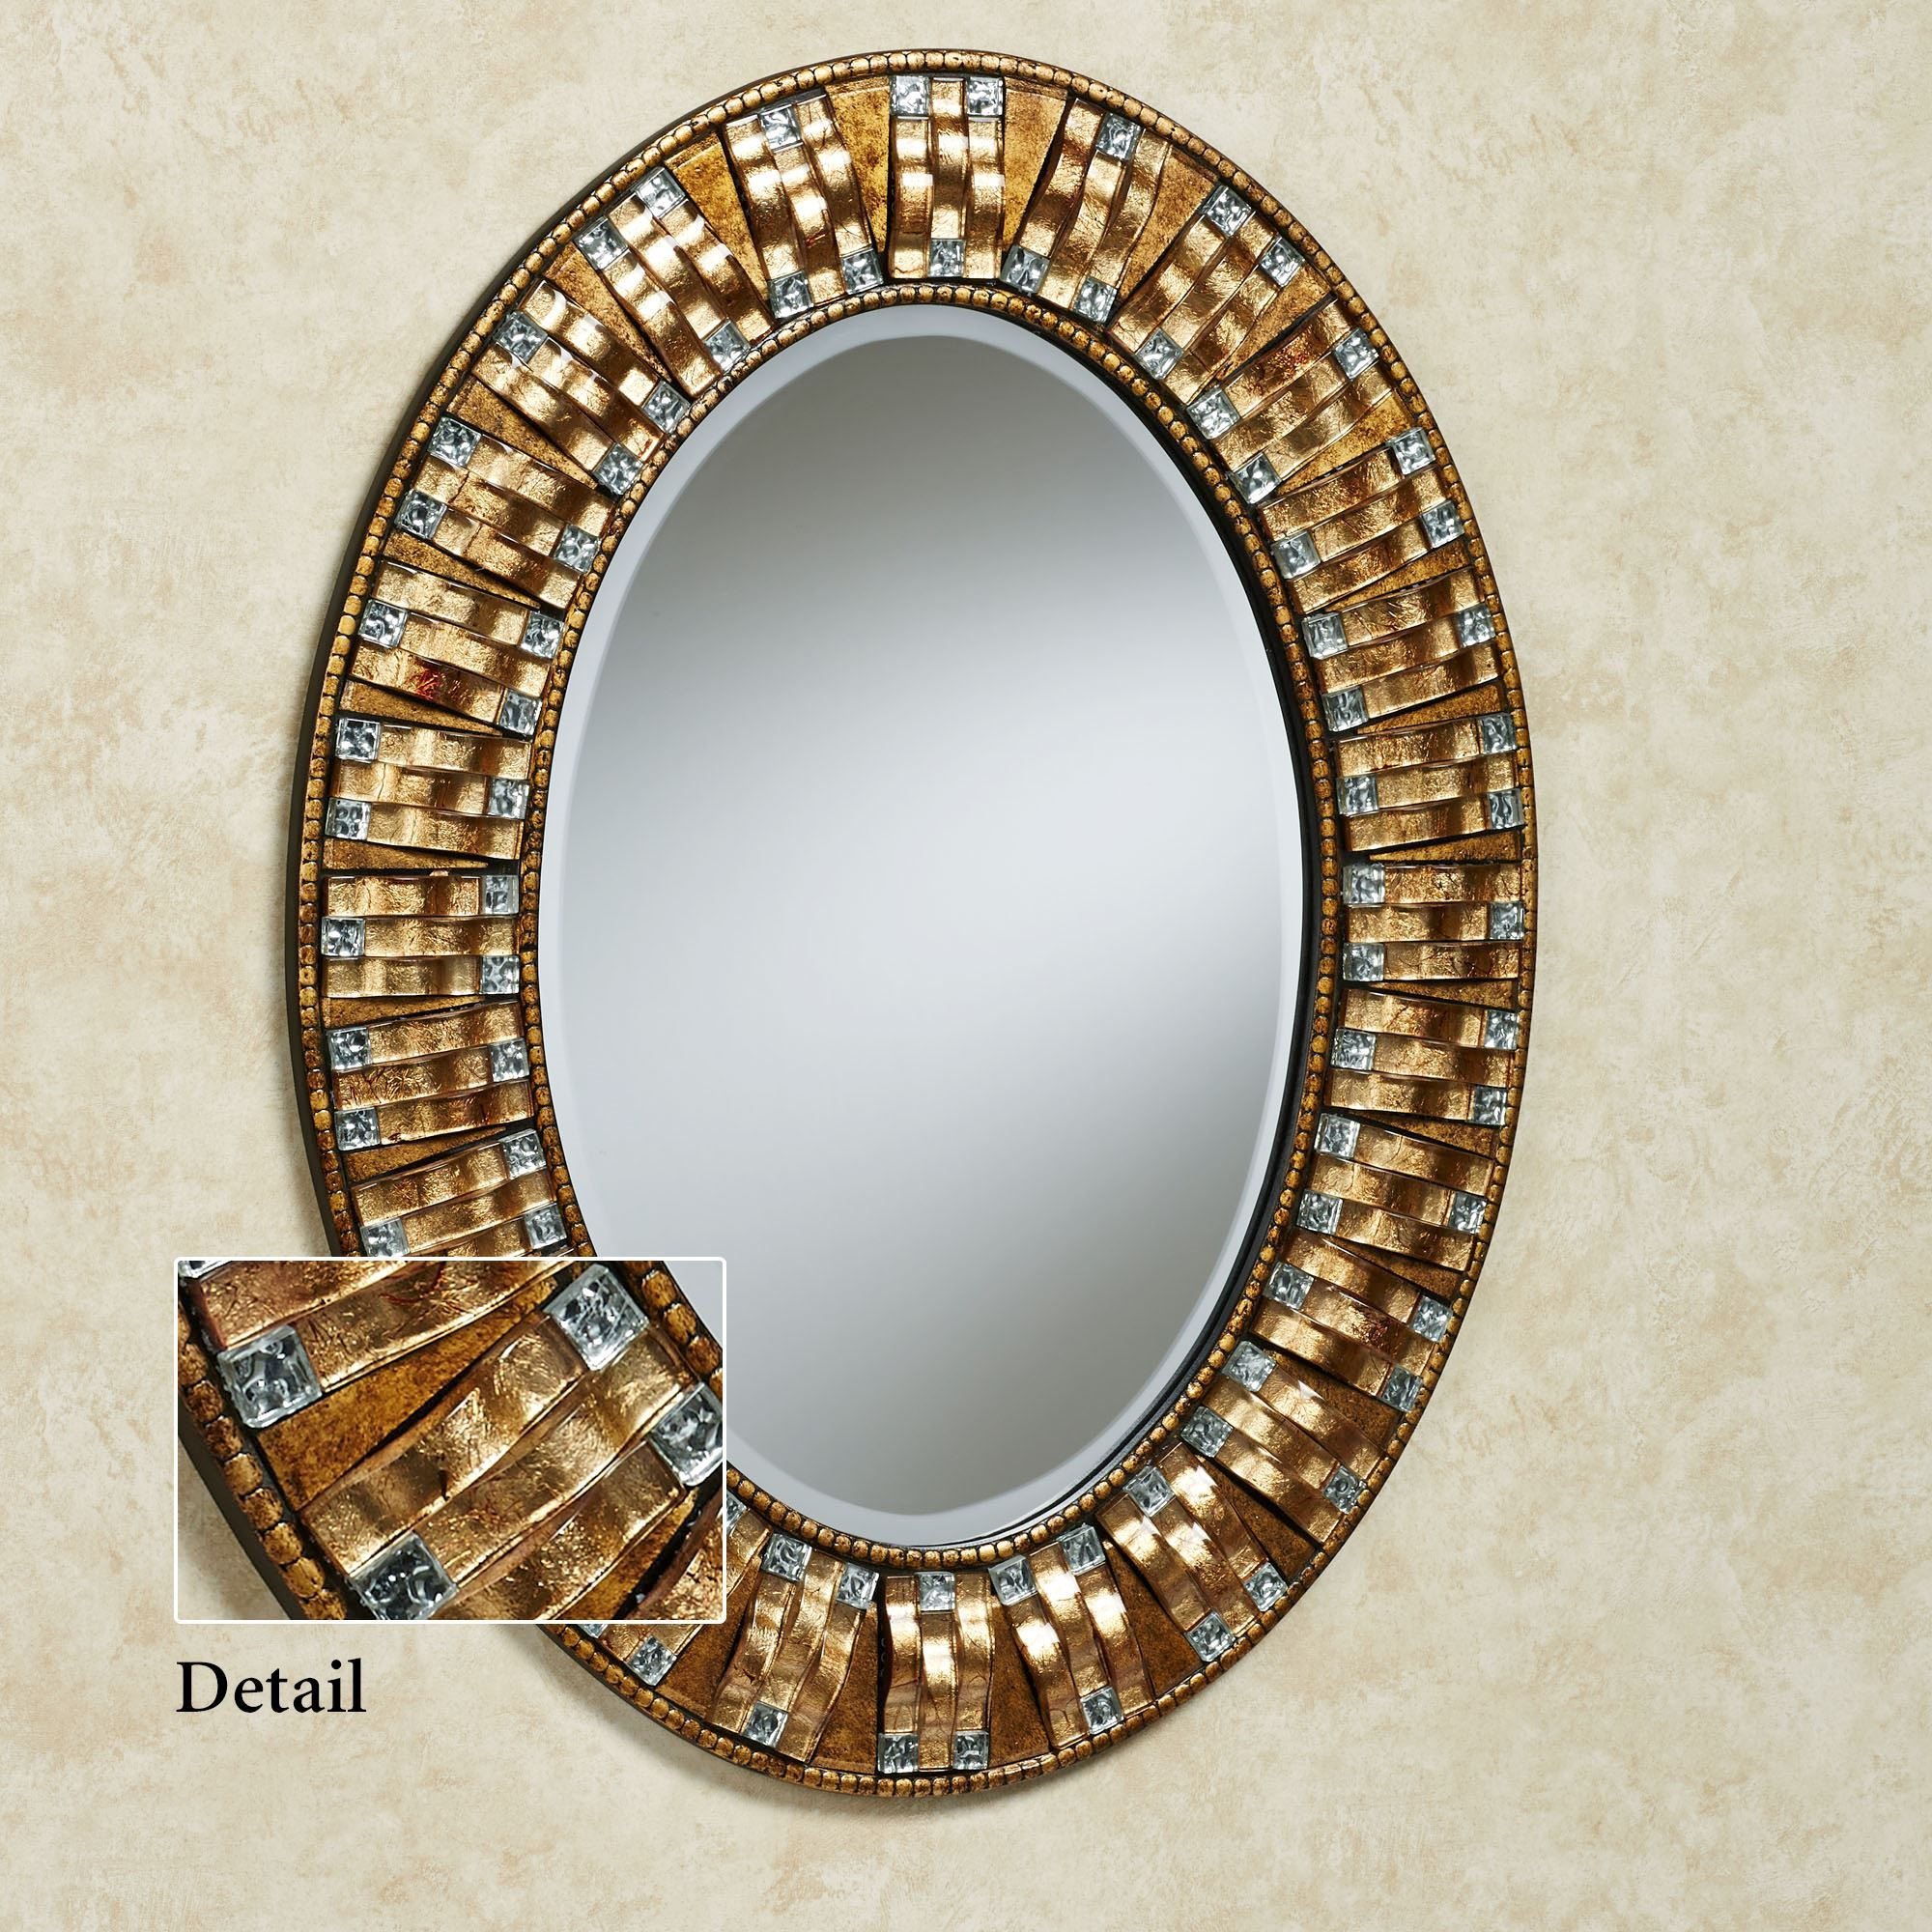 Maybelle Mosaic Oval Wall Mirror Pertaining To Oval Metallic Accent Mirrors (Image 14 of 20)